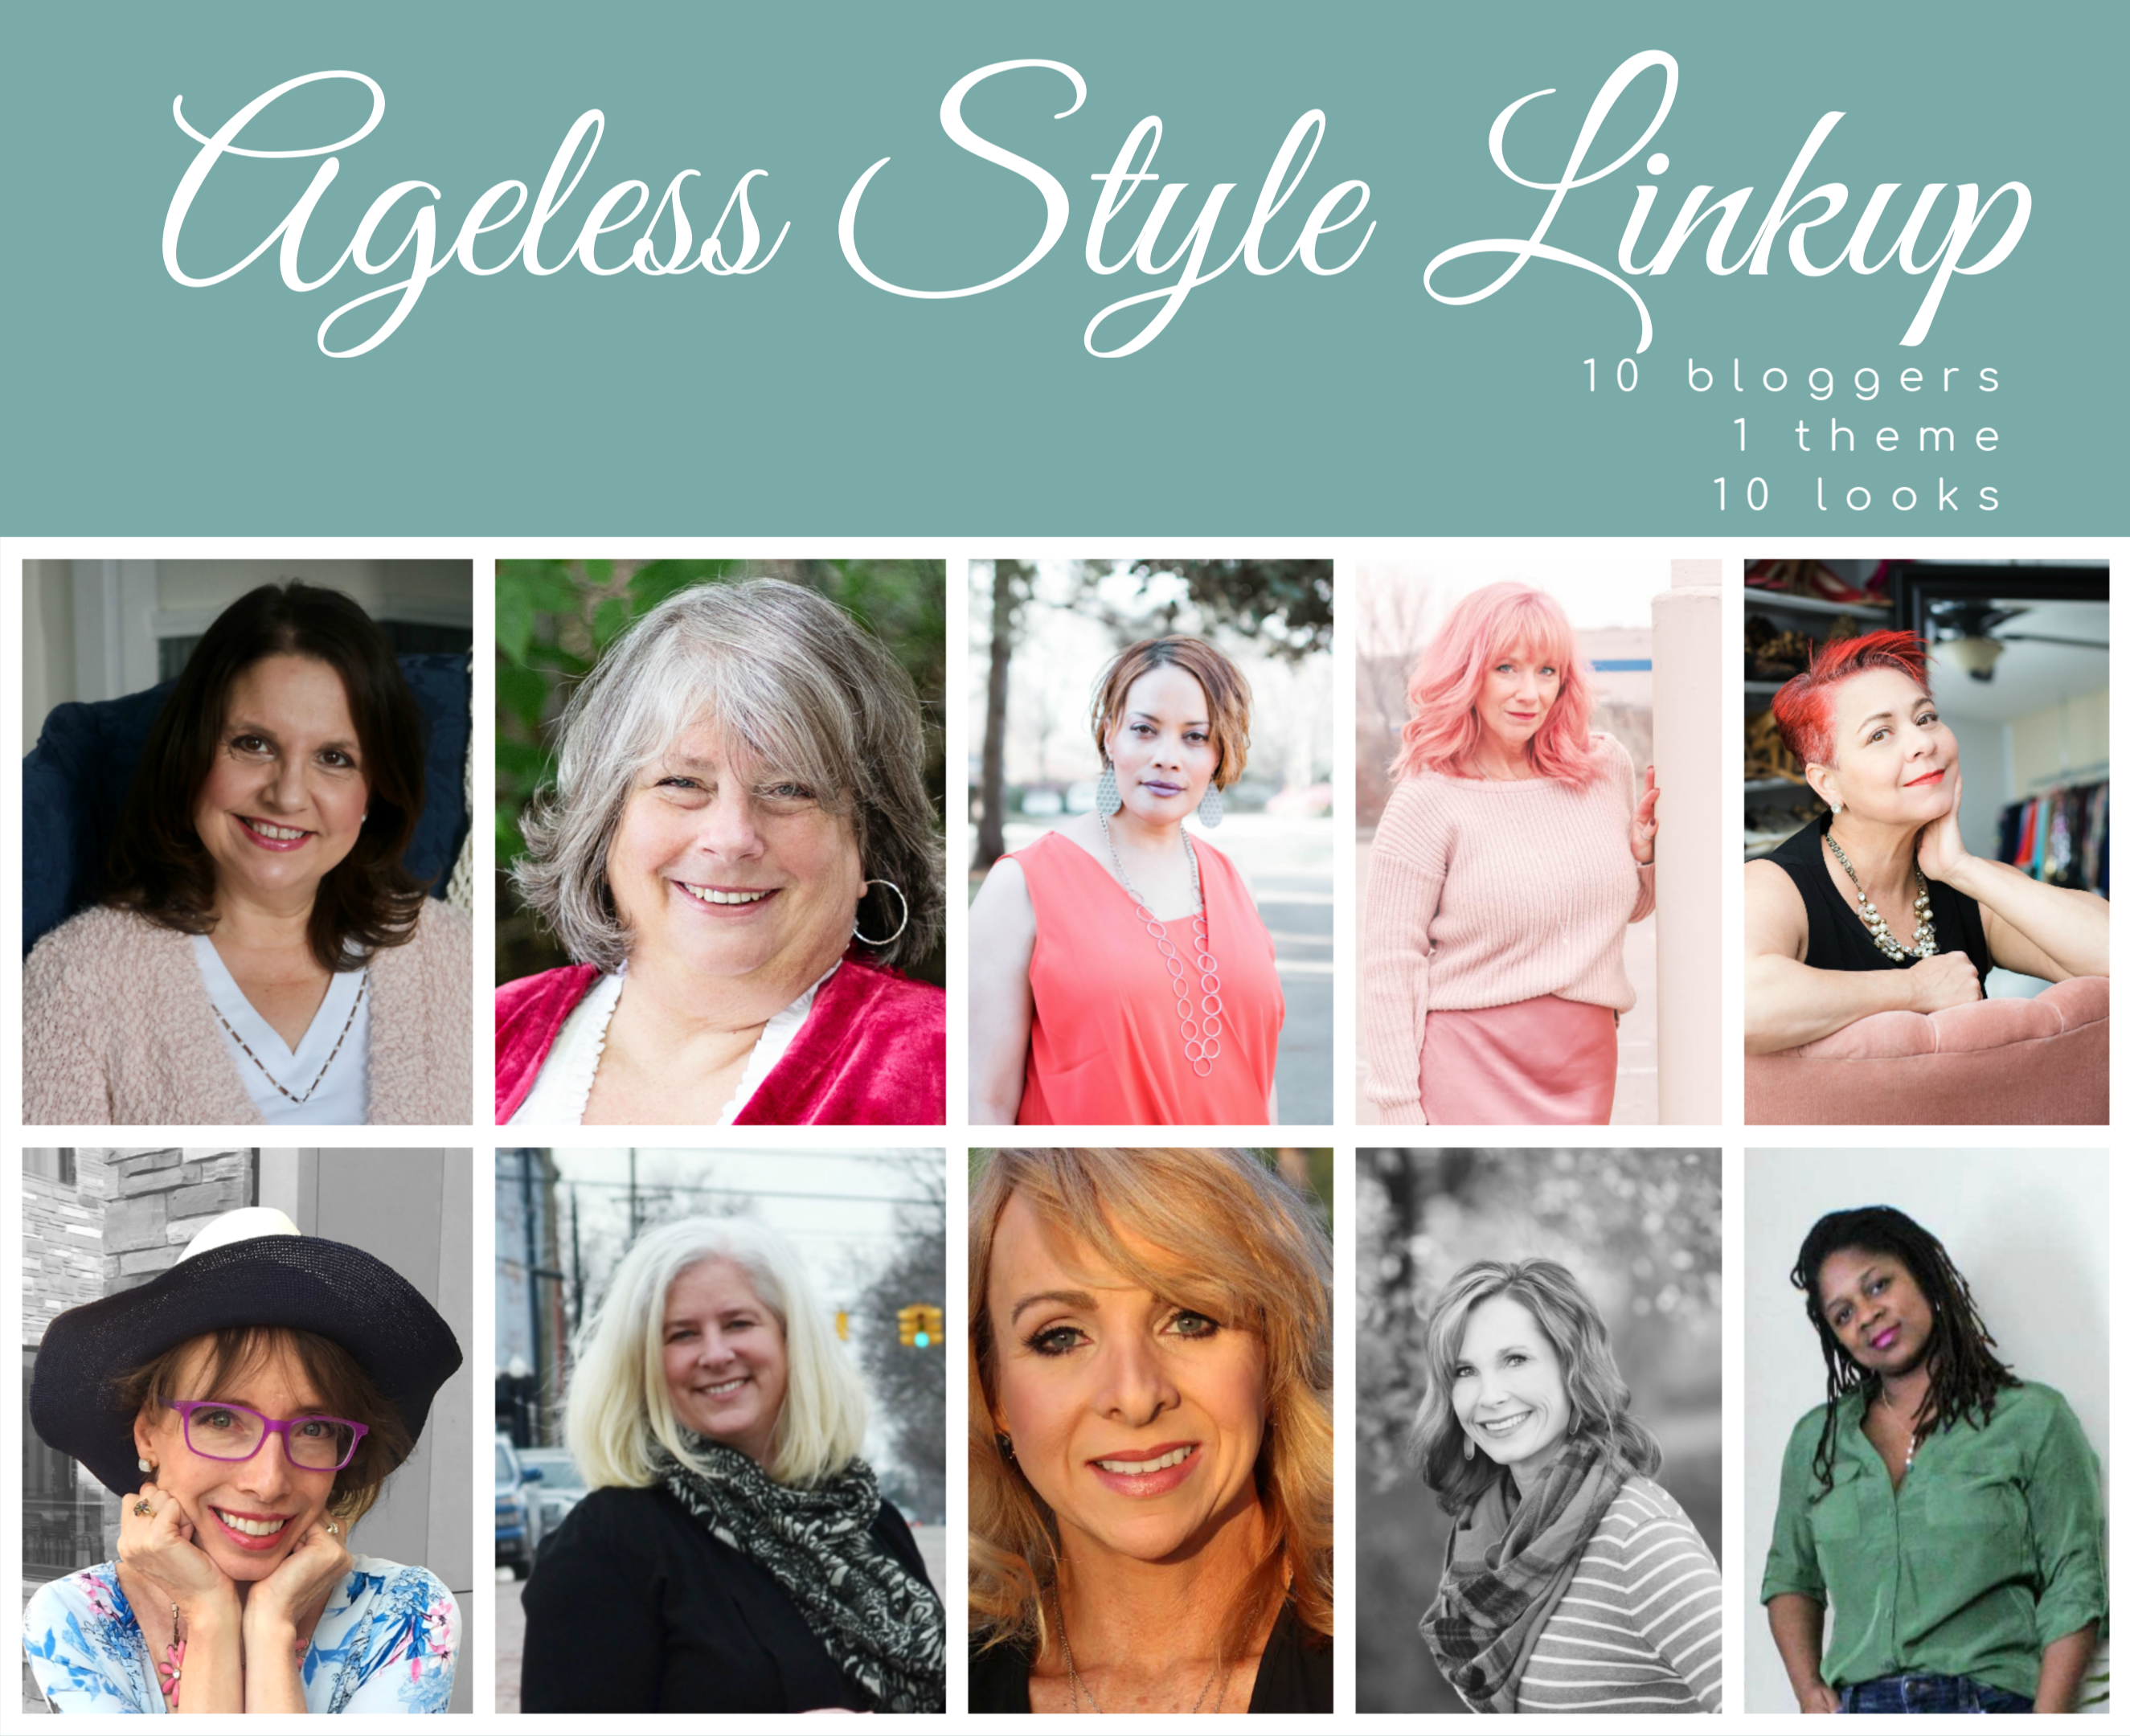 Ageless Style Linkup Badge 1